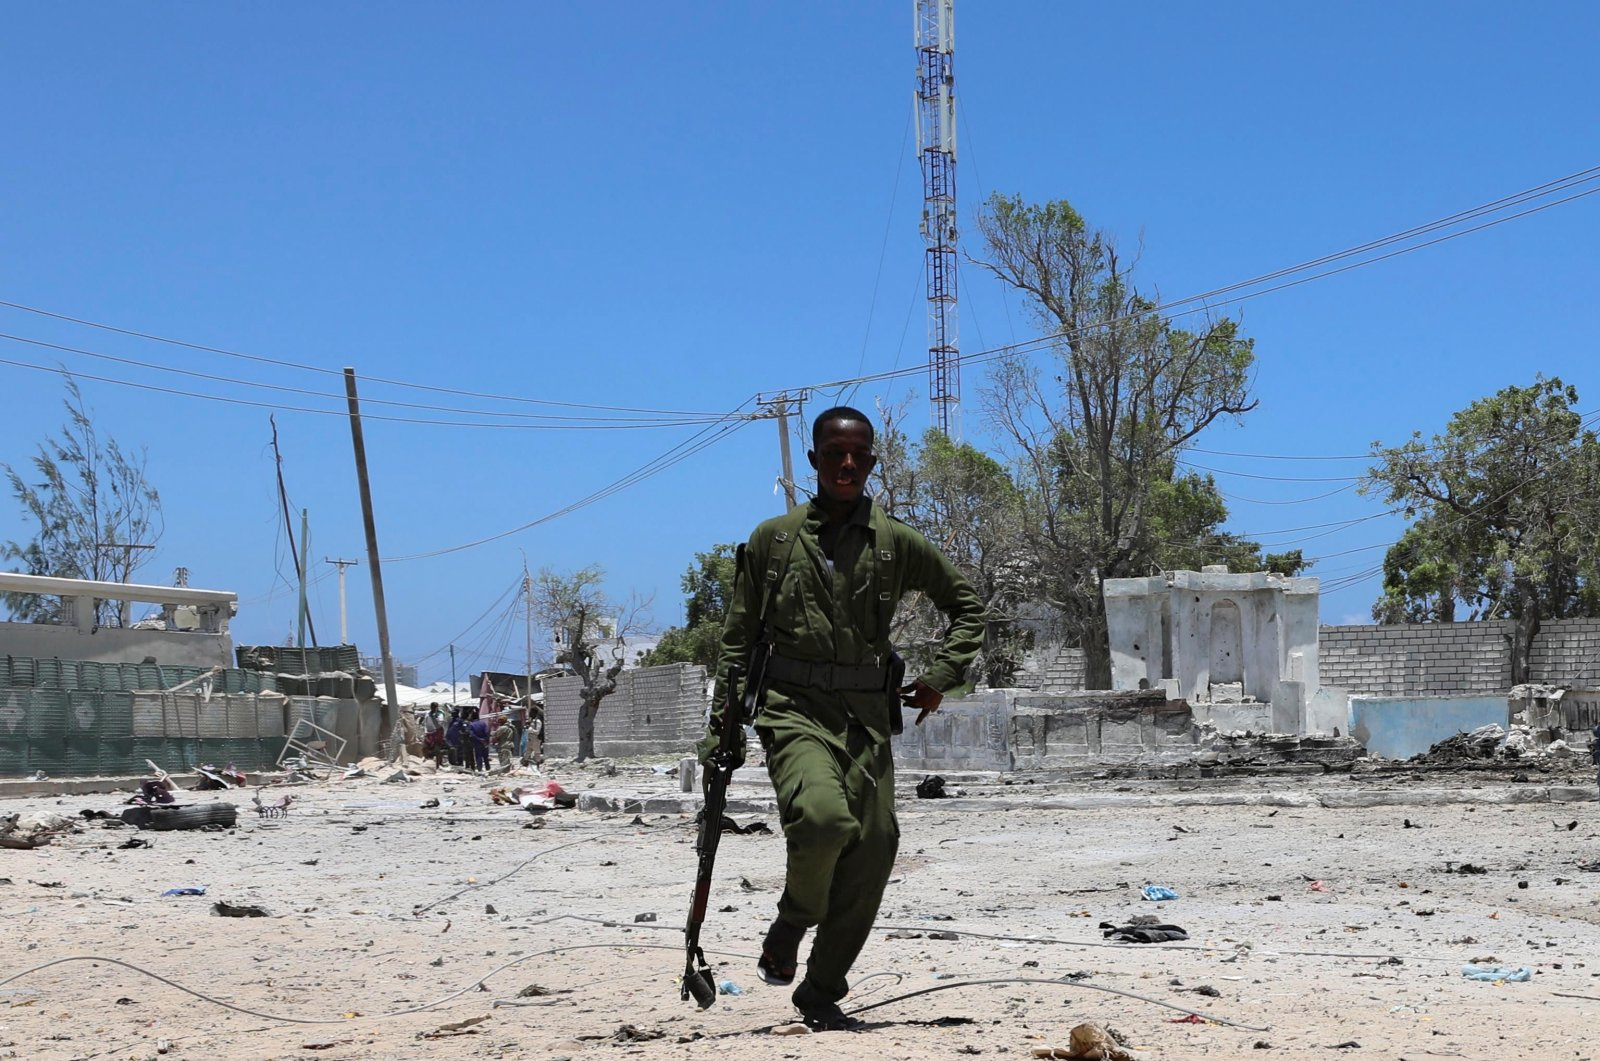 A Somali soldier runs to hold a position as al-Shabab militia storm a government building in Mogadishu, Somalia, March 23, 2019. (Reuters Photo)